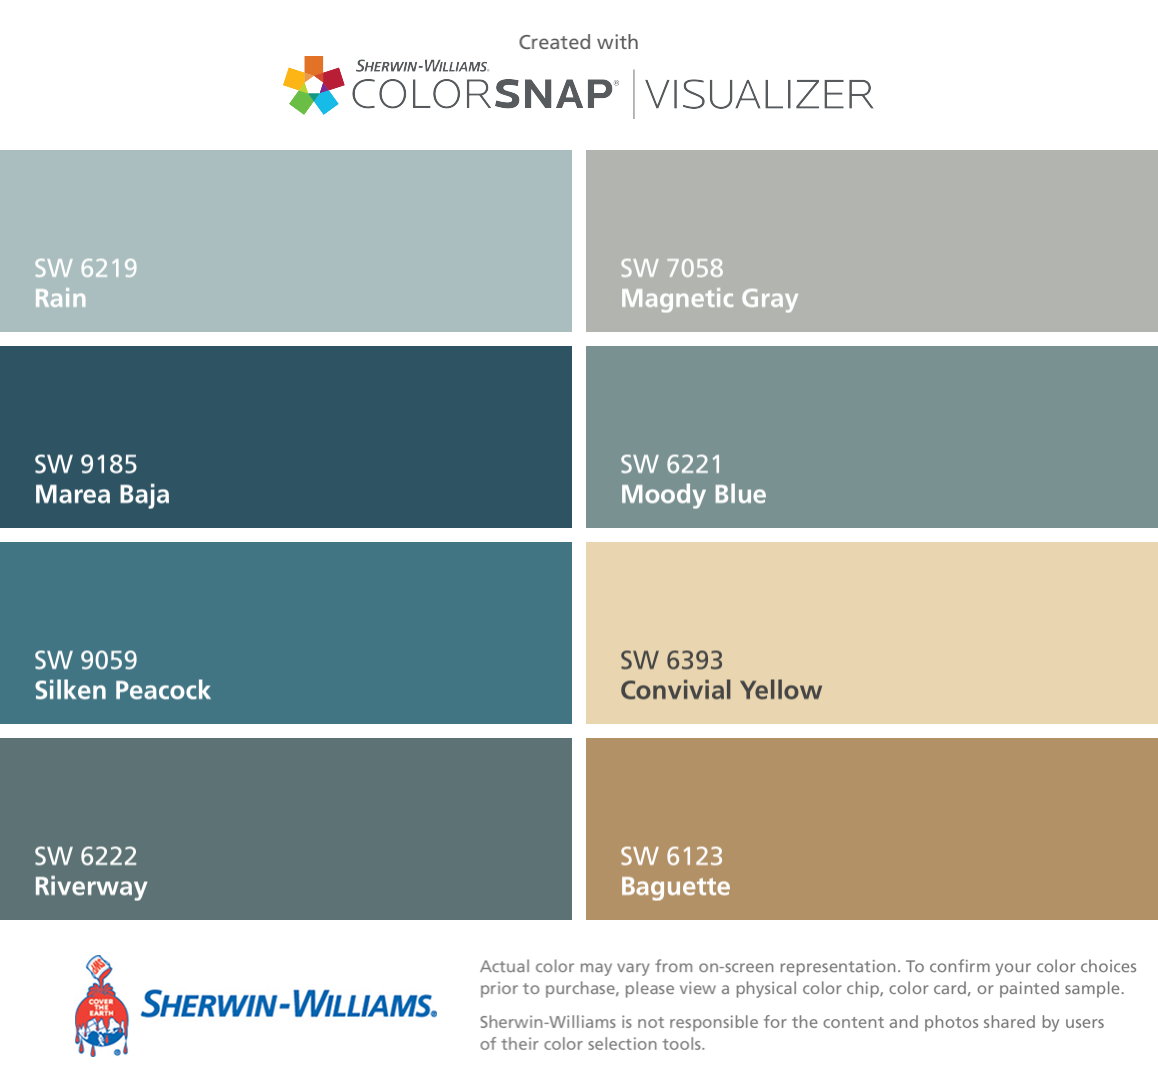 I Found These Colors With Colorsnap Visualizer For Iphone By Sherwin Williams Rai Exterior Paint Colors For House Paint Colors For Home Exterior Paint Colors [ 1088 x 1158 Pixel ]